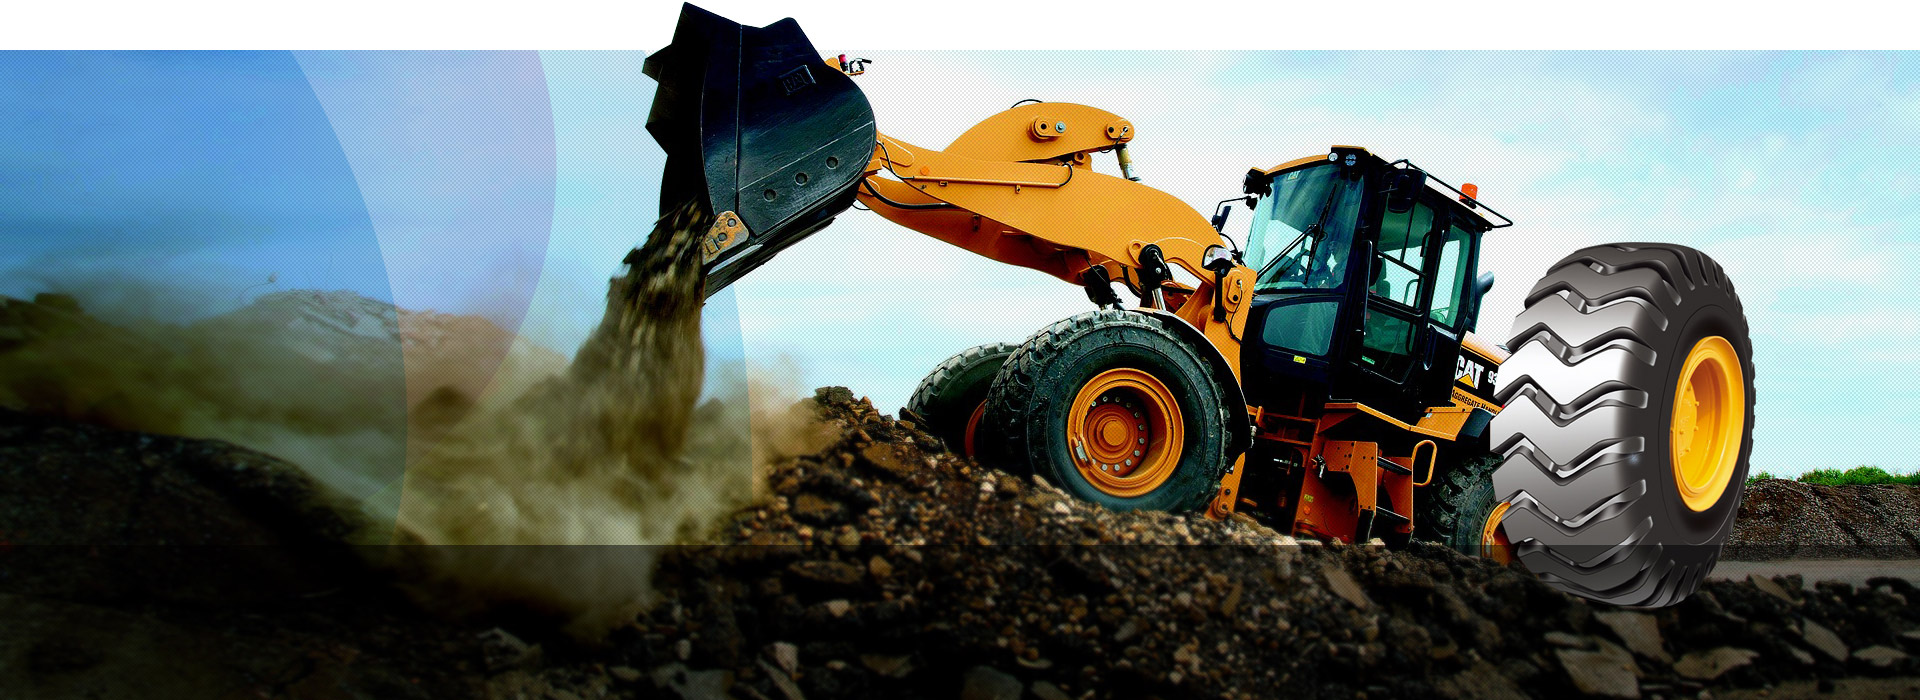 Tire rubber industry